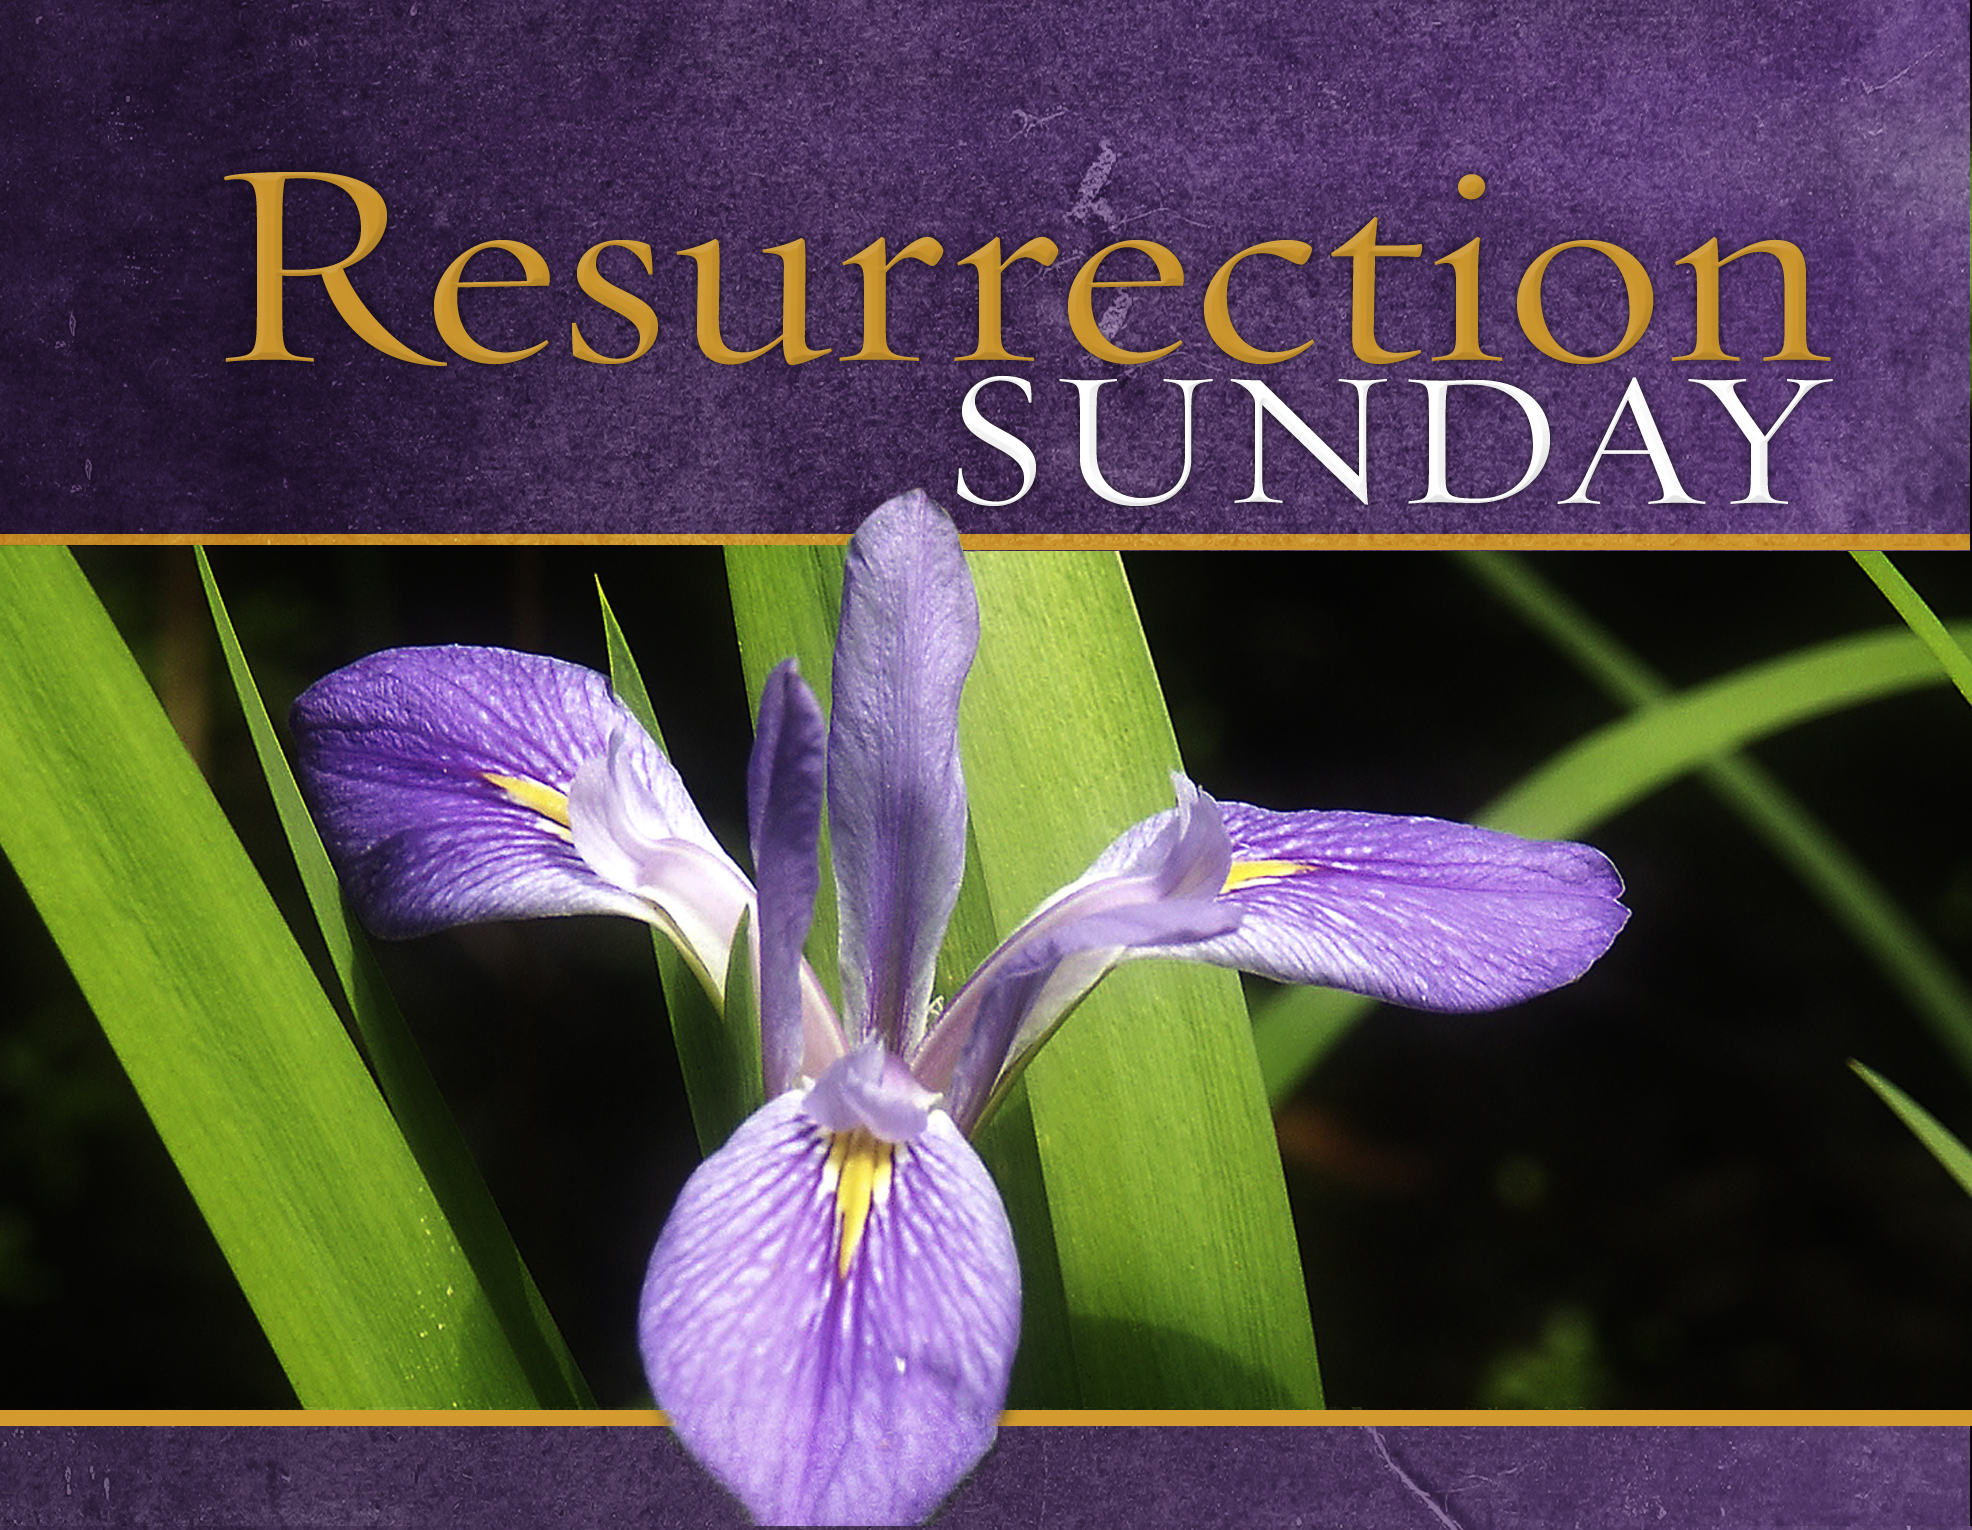 http://ministry127.com/sites/default/files/Resurrection%20Sunday-Easter%20(title).jpg